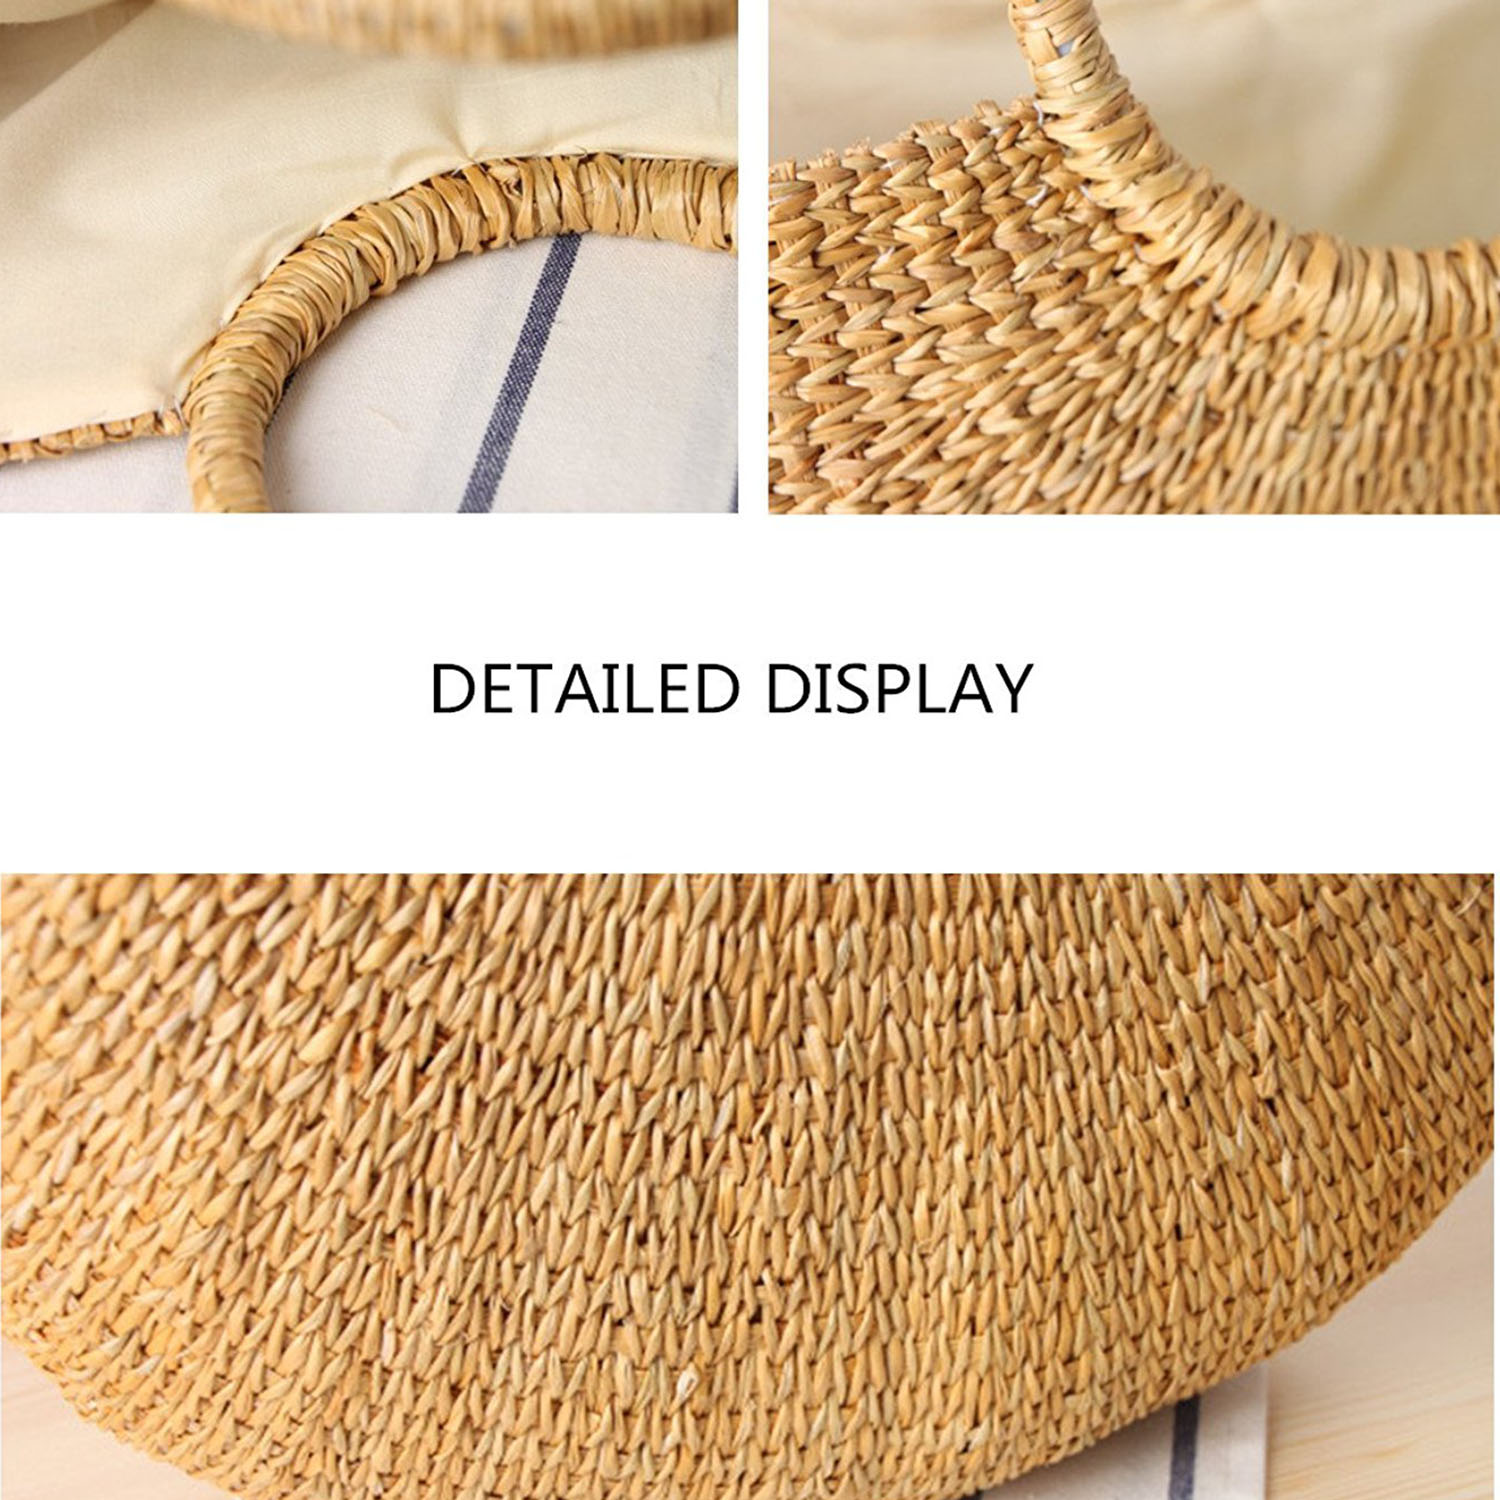 Image 4 - DCOS Womens Vintage Straw Woven Handbags Casual Beach Vacation Large Tote Bags With Round Handle Ring(Hairball)Top-Handle Bags   -